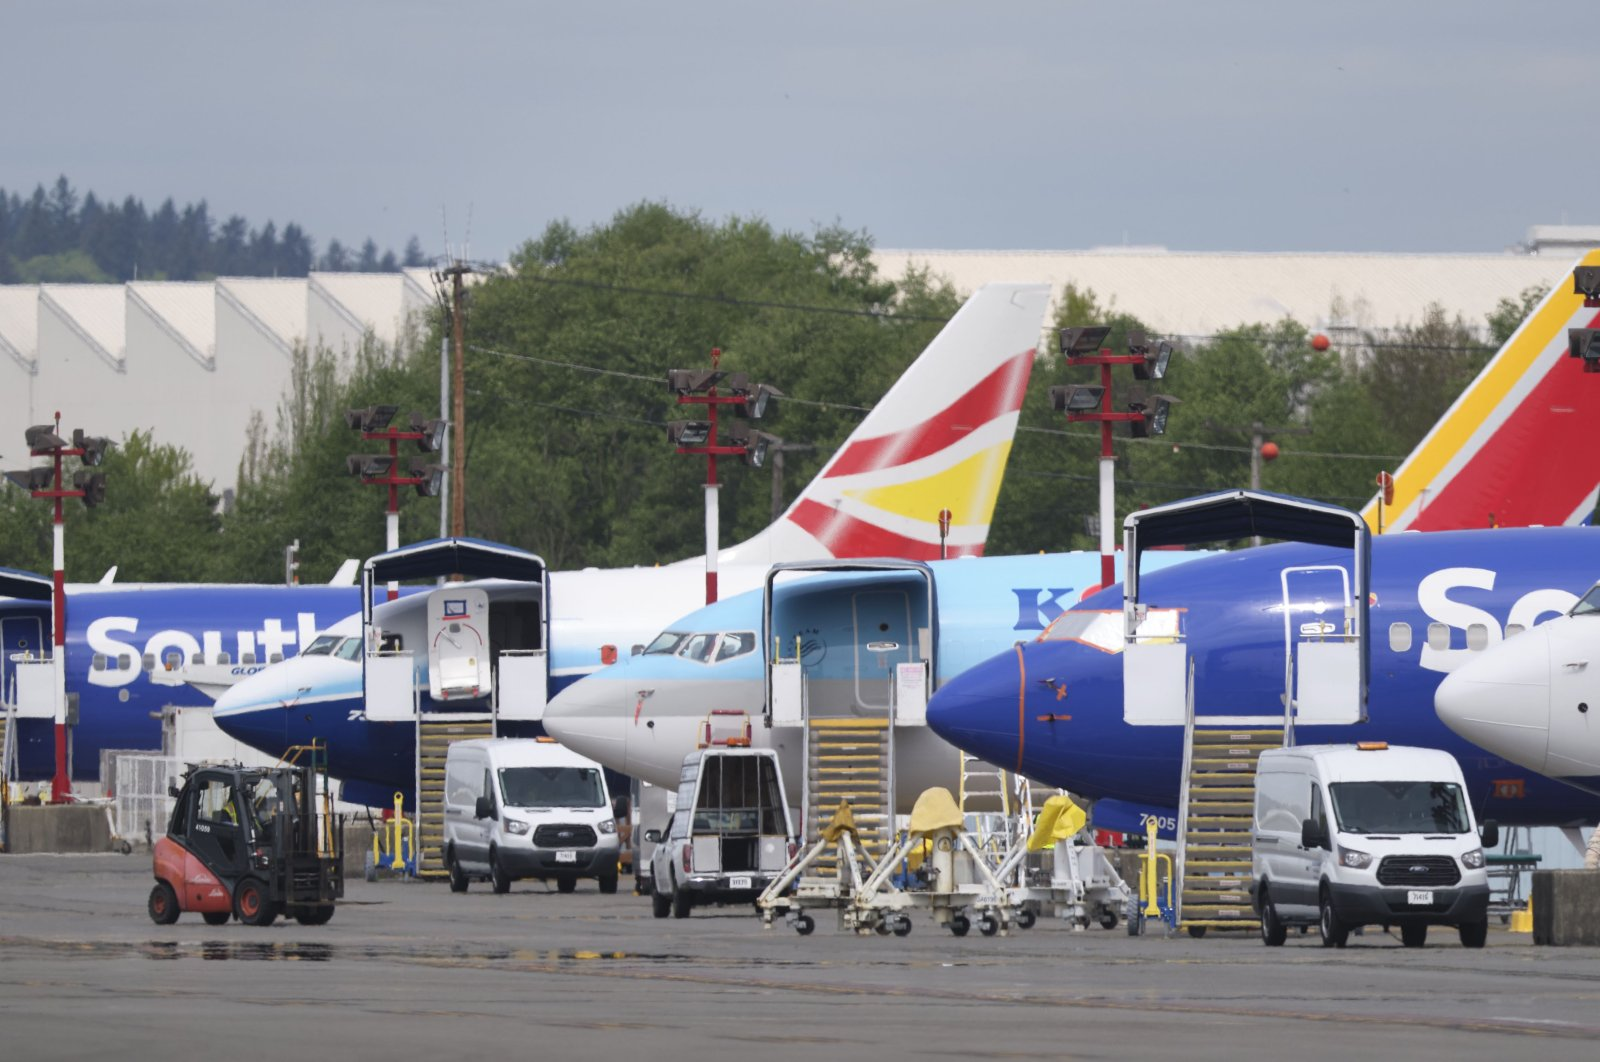 Grounded Boeing 737 MAX airplanes outside the company's factory, Renton, Washington, April 29, 2020. Boeing last week announced that it would lay off 15% of its commercial-airplanes division workforce amid the fallout from the coronavirus pandemic. (AFP Photo)